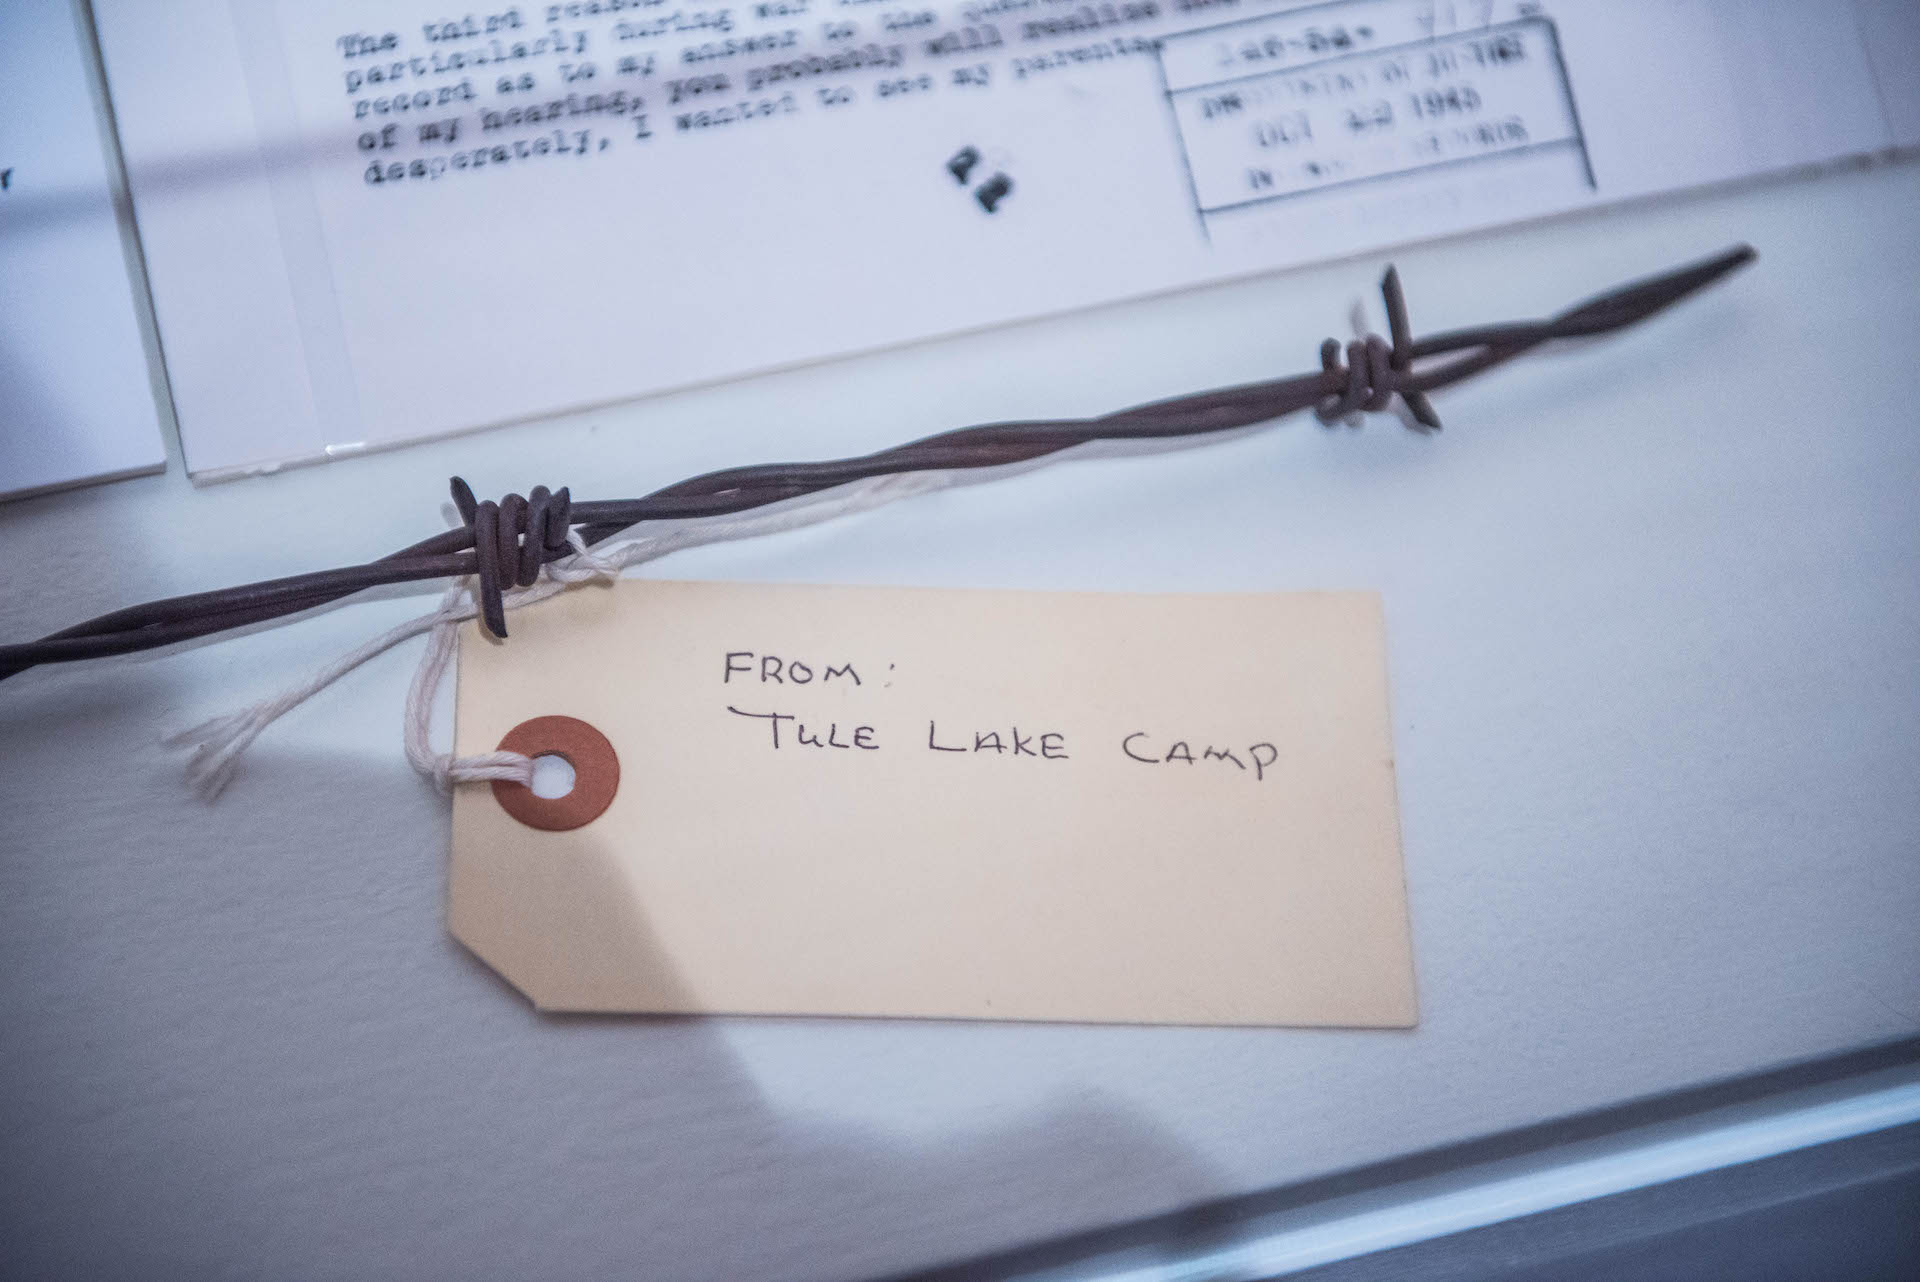 A piece of the barbed wire from Tule Lake where Takei and his family were interned.